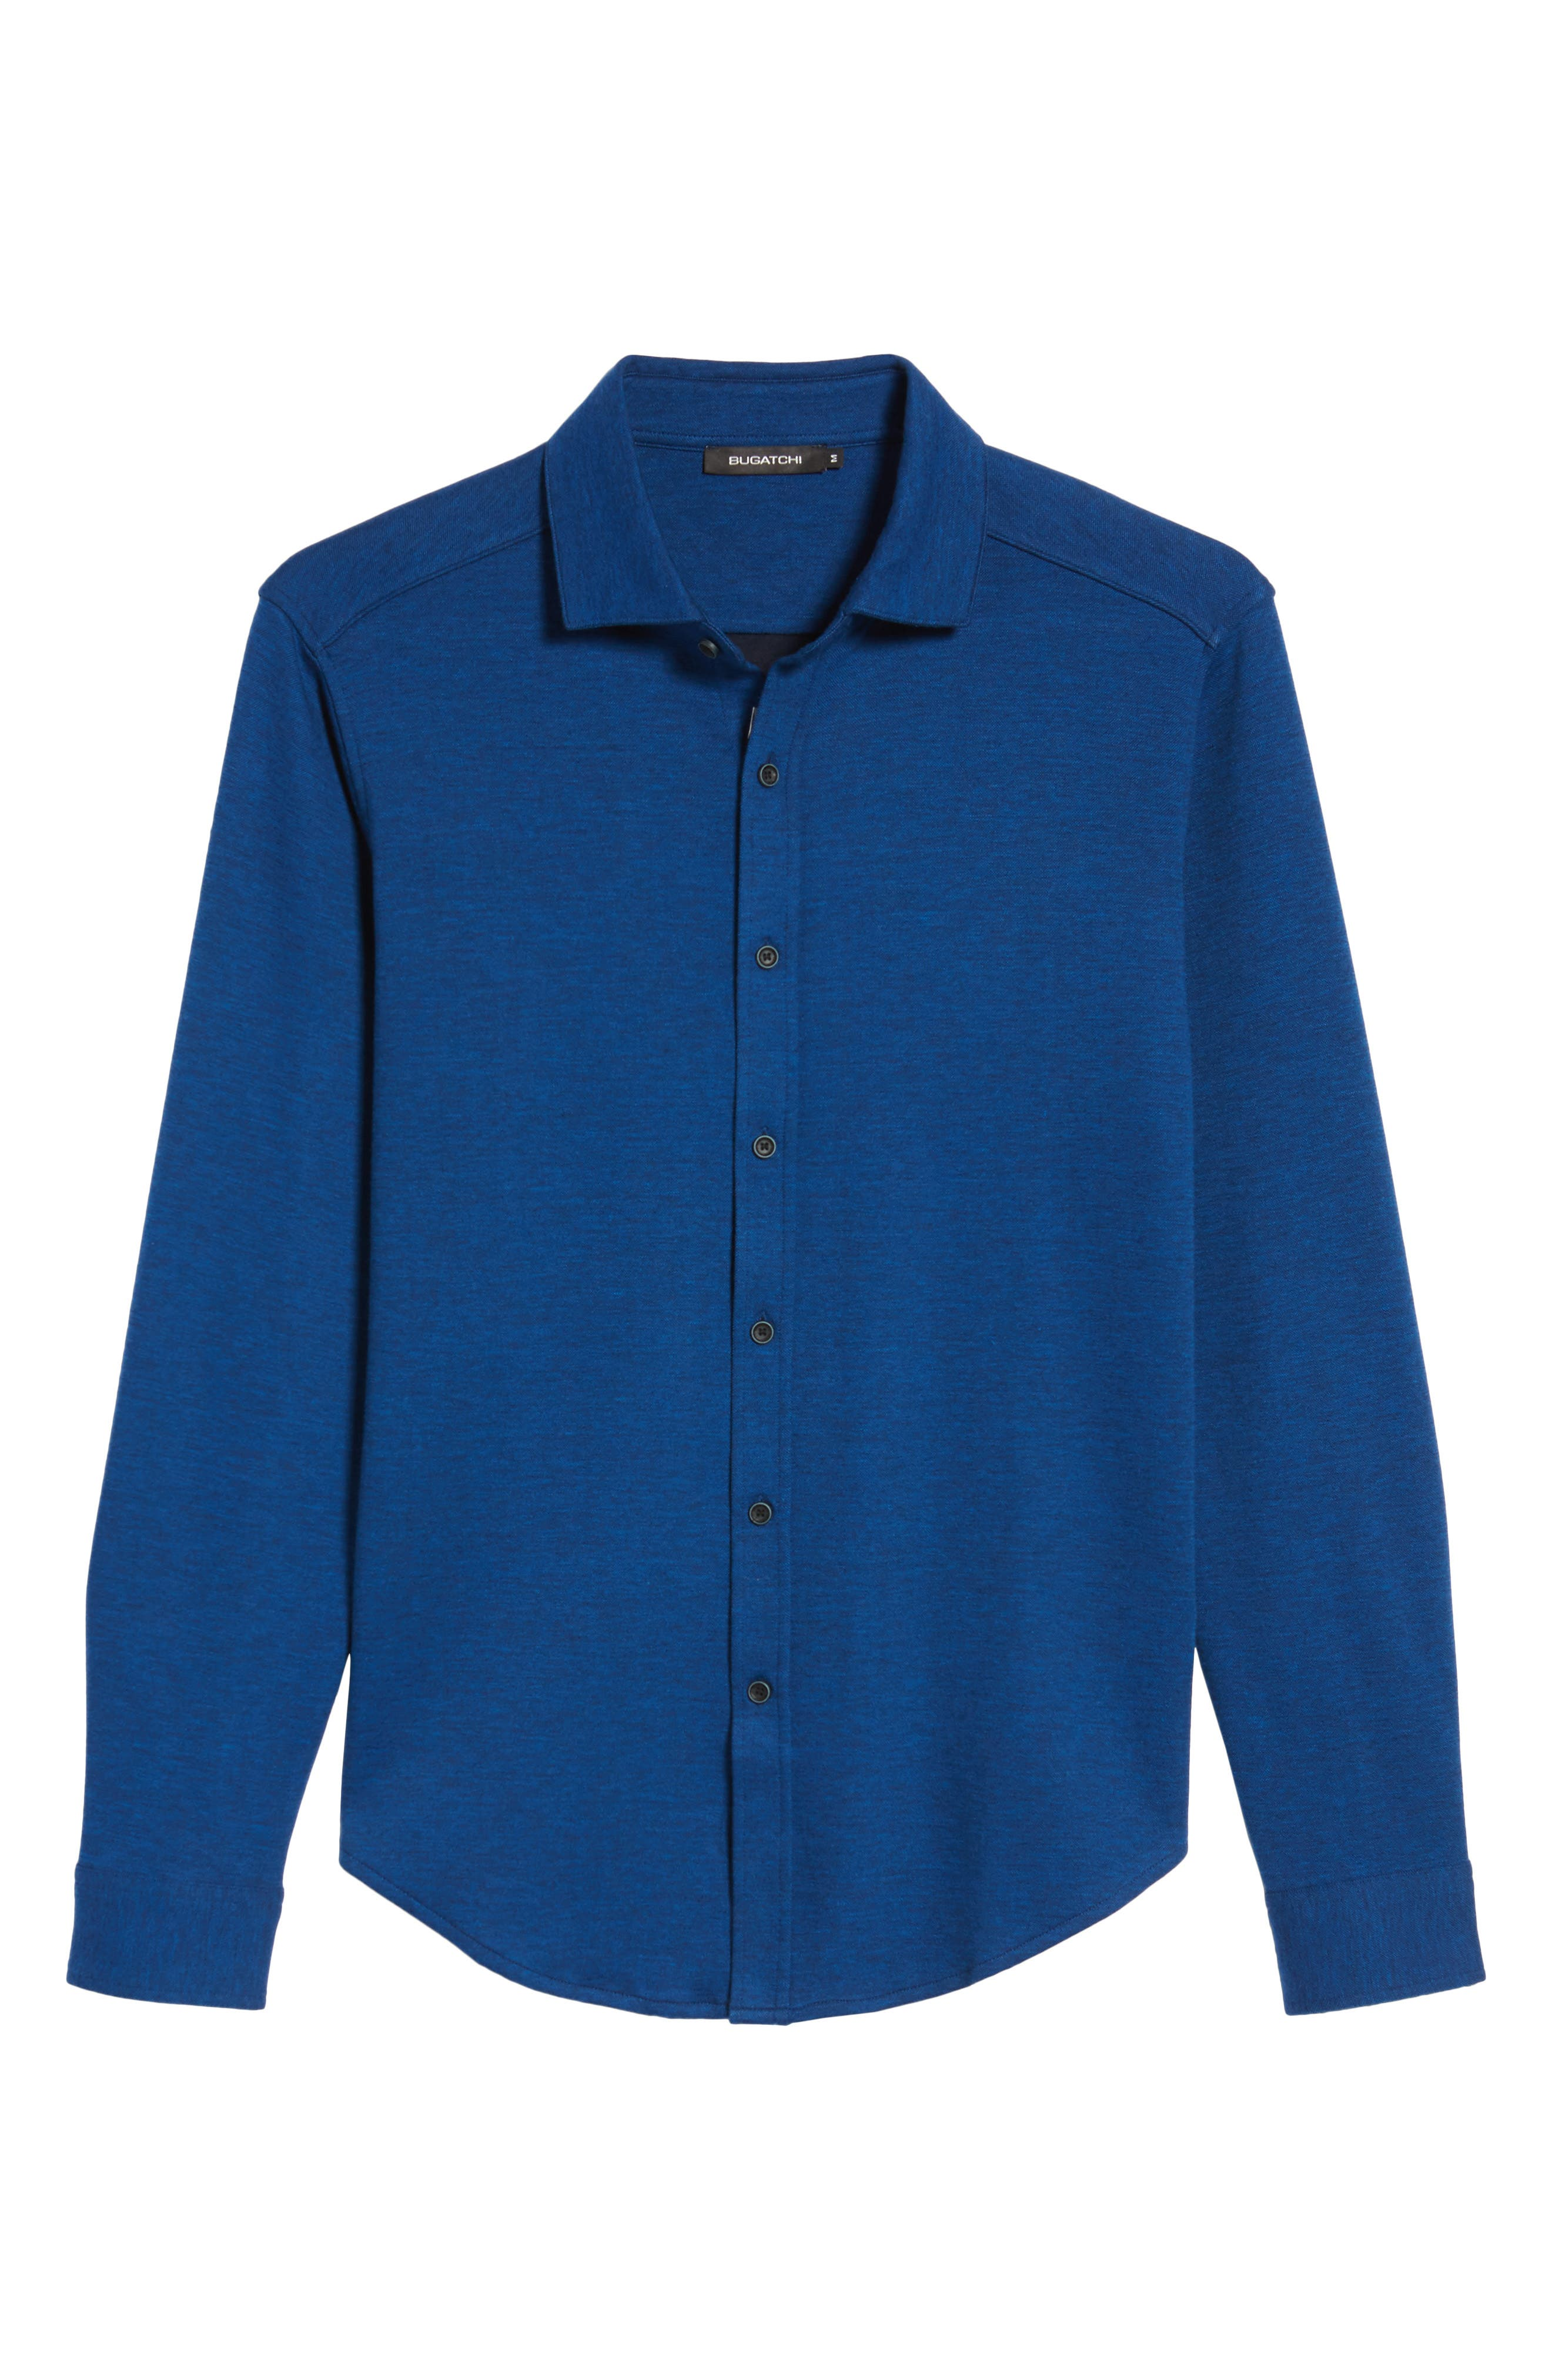 Classic Fit Heathered Knit Sport Shirt,                             Alternate thumbnail 6, color,                             Night Blue